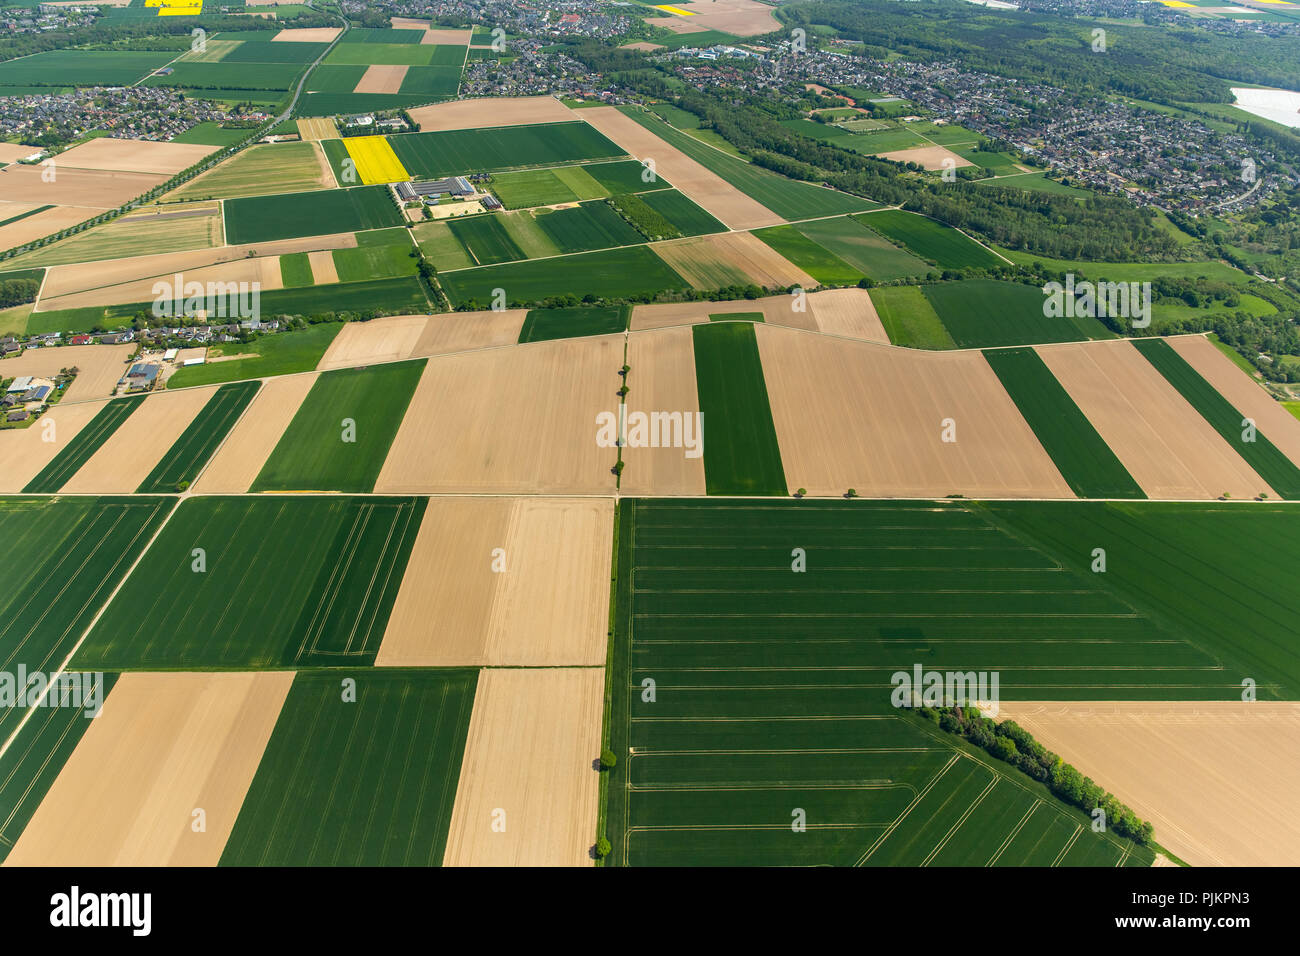 Grain fields at Lower Rhine, crop rotation, corn fields in spring, Grevenbroich, Lower Rhine, North Rhine-Westphalia, Germany - Stock Image